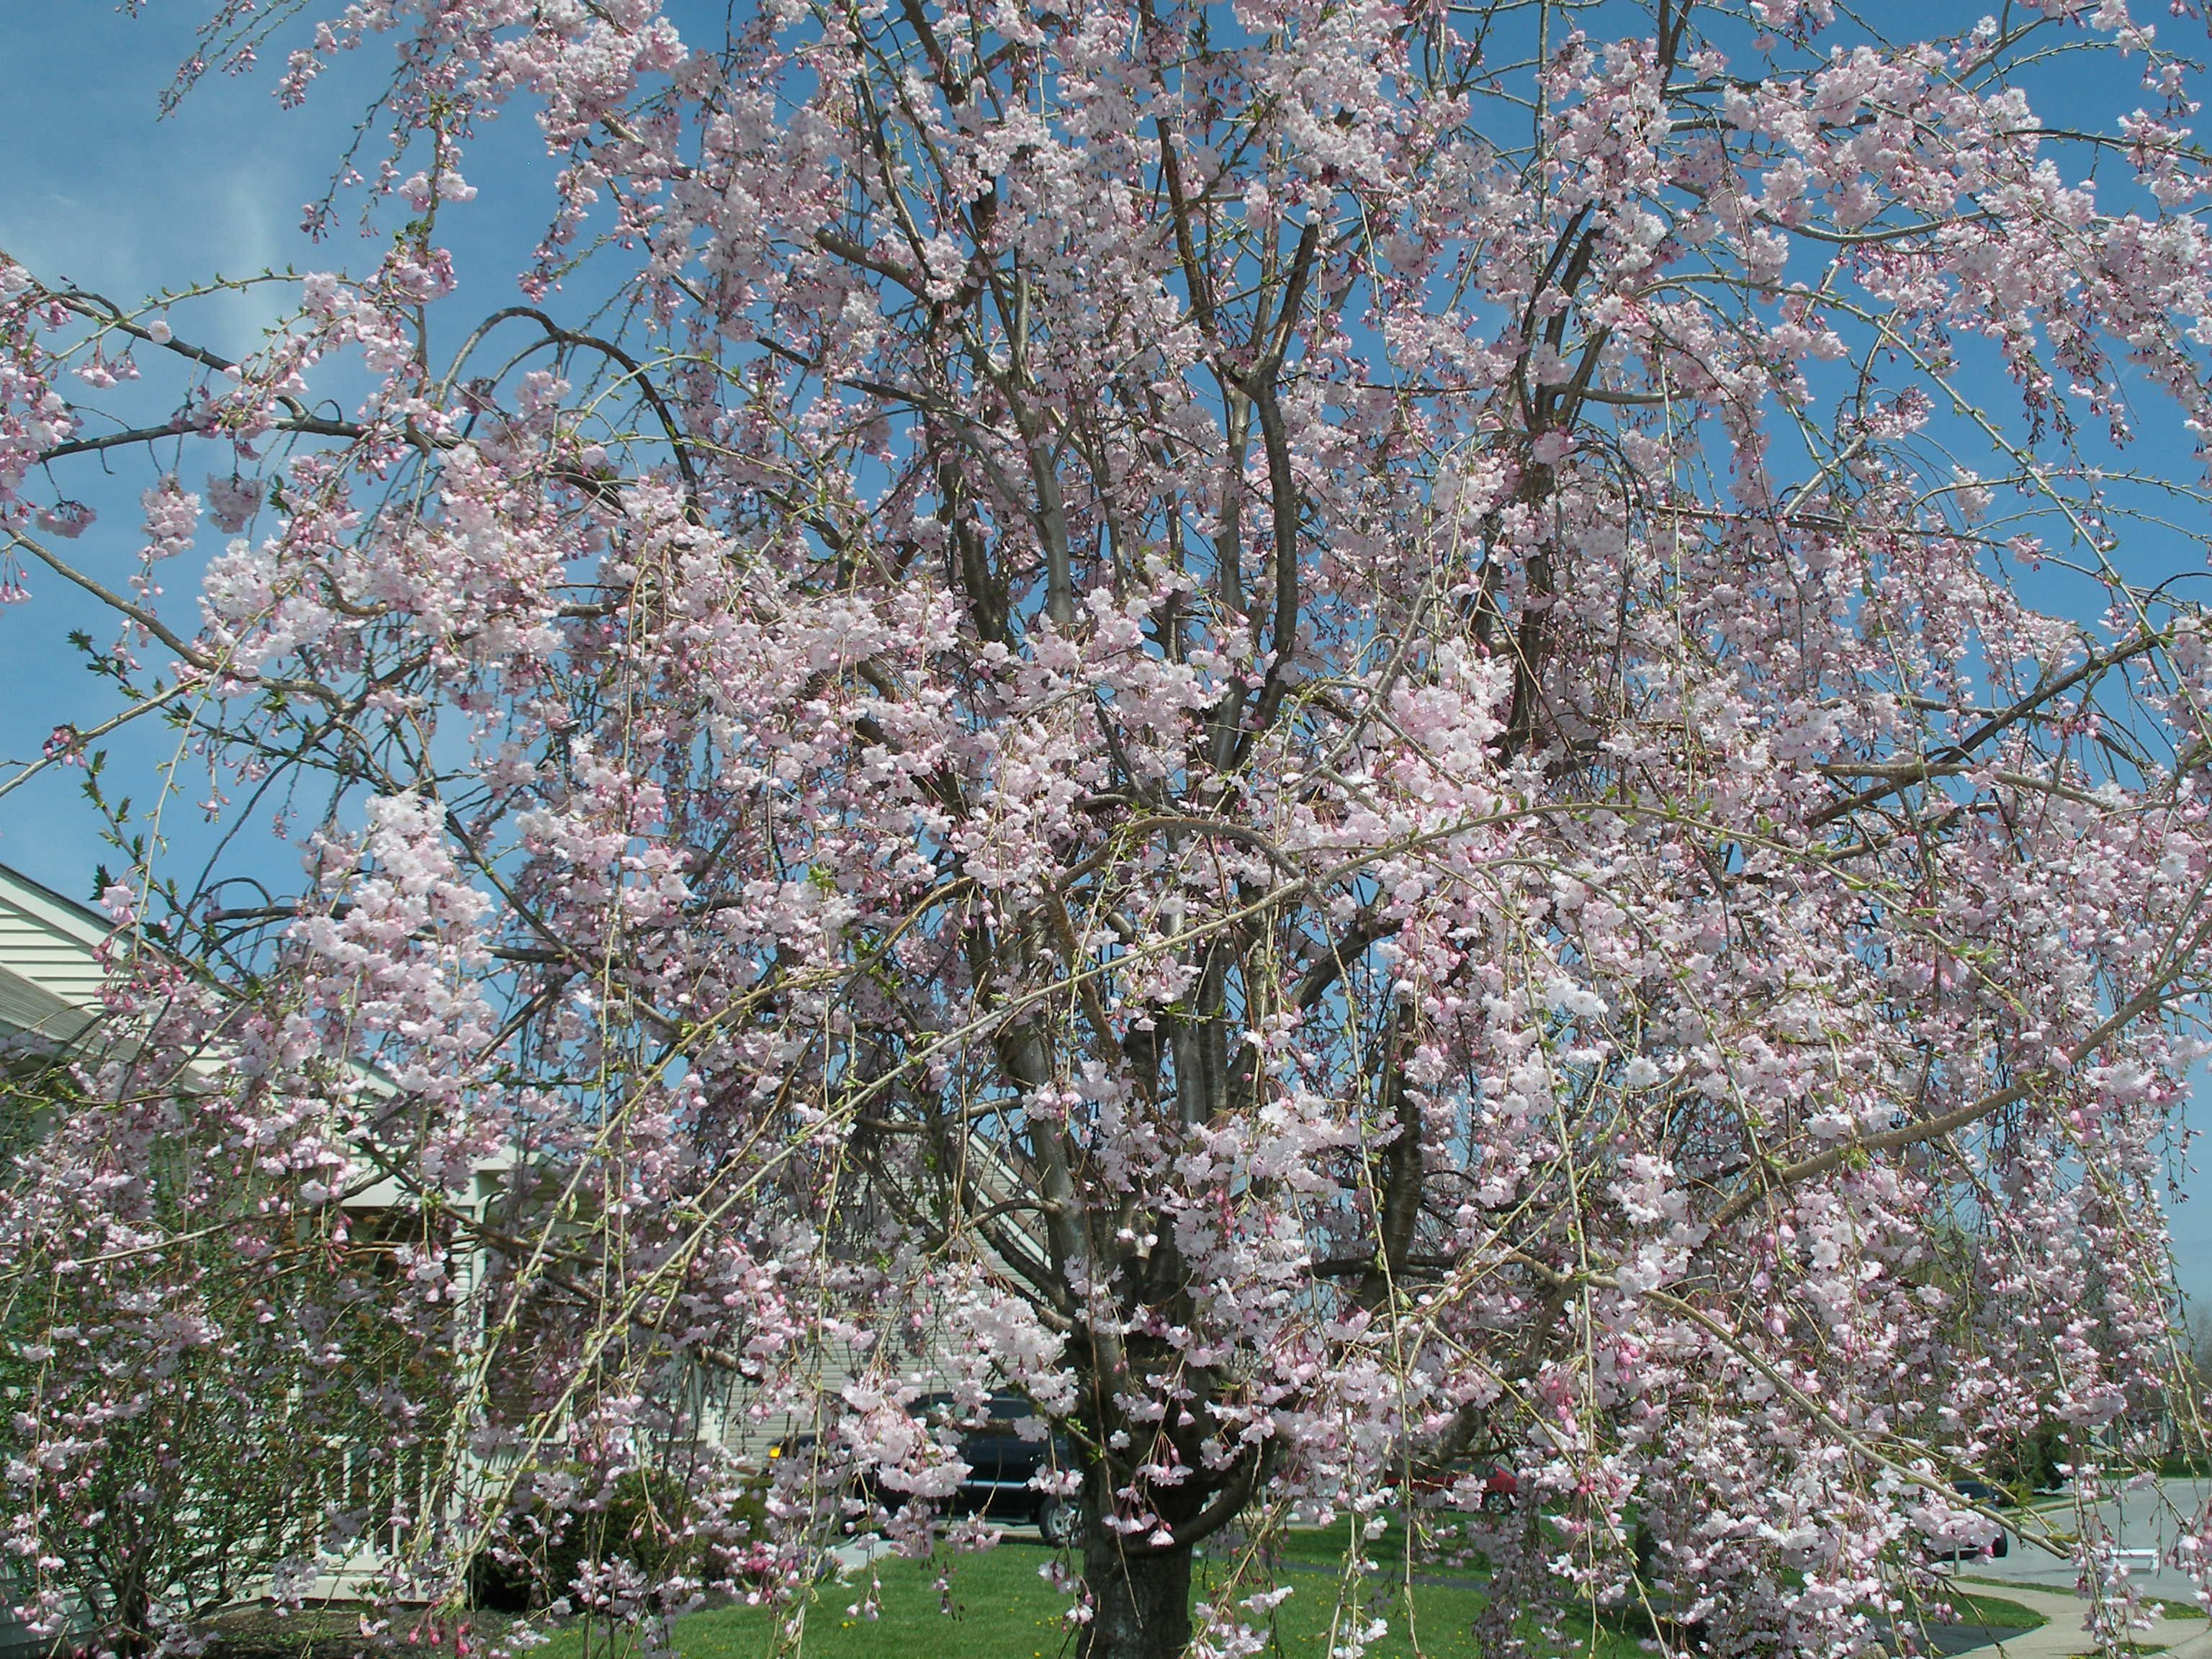 Can T Wait Till My Non Fruiting Not Sure Of The Proper Terminology Cherry Tree Looks Like This Again Cherry Tree Outdoor Plants